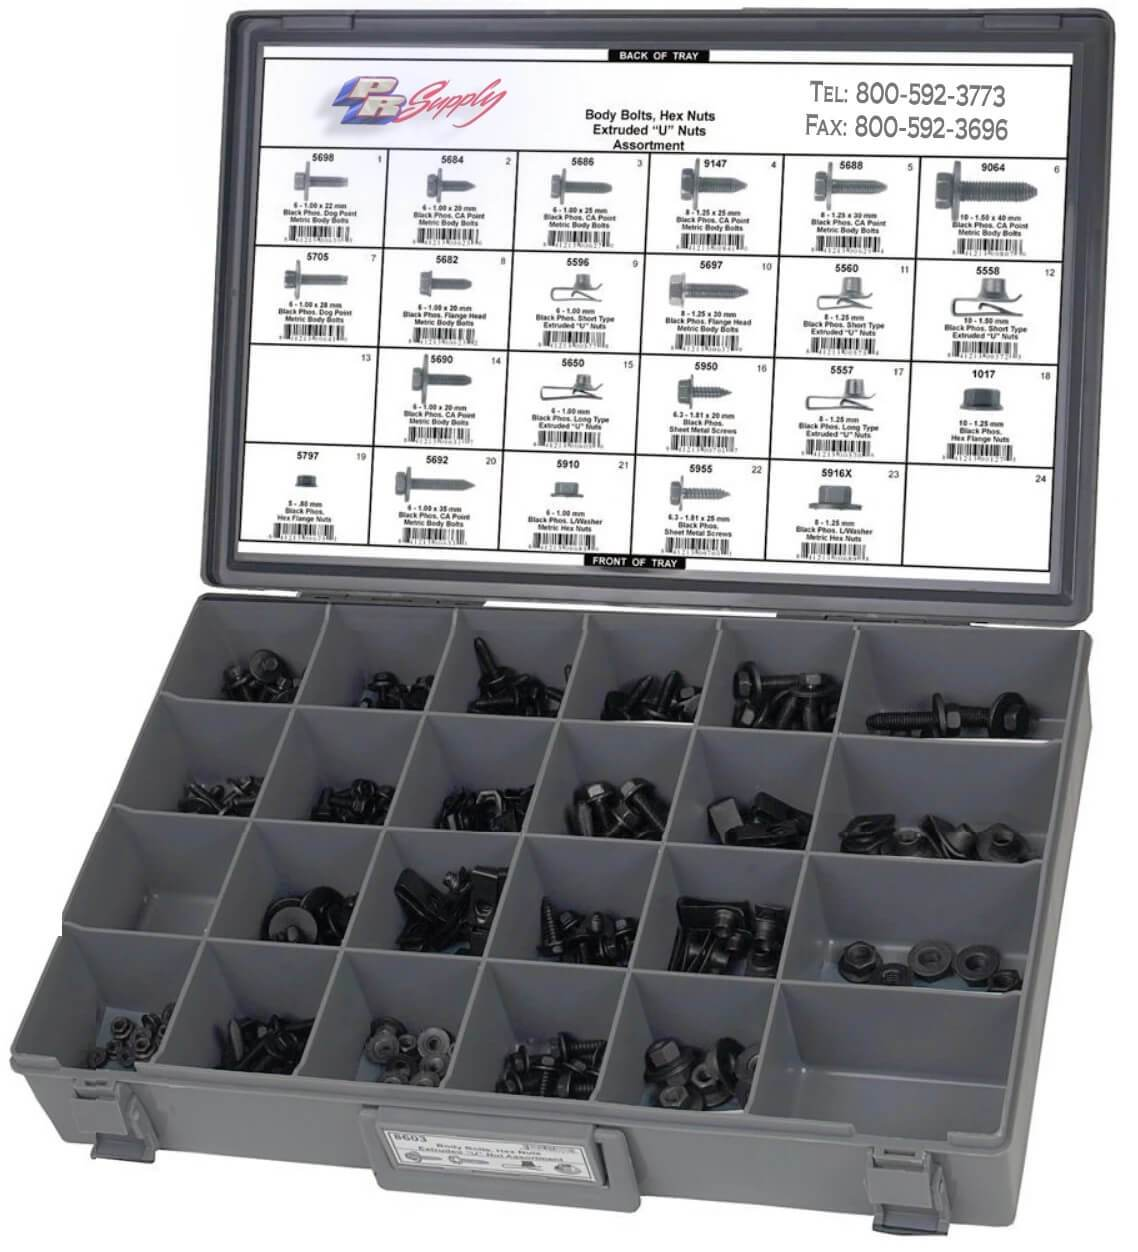 203 PC BODY BOLTS ASSORTMENT KIT